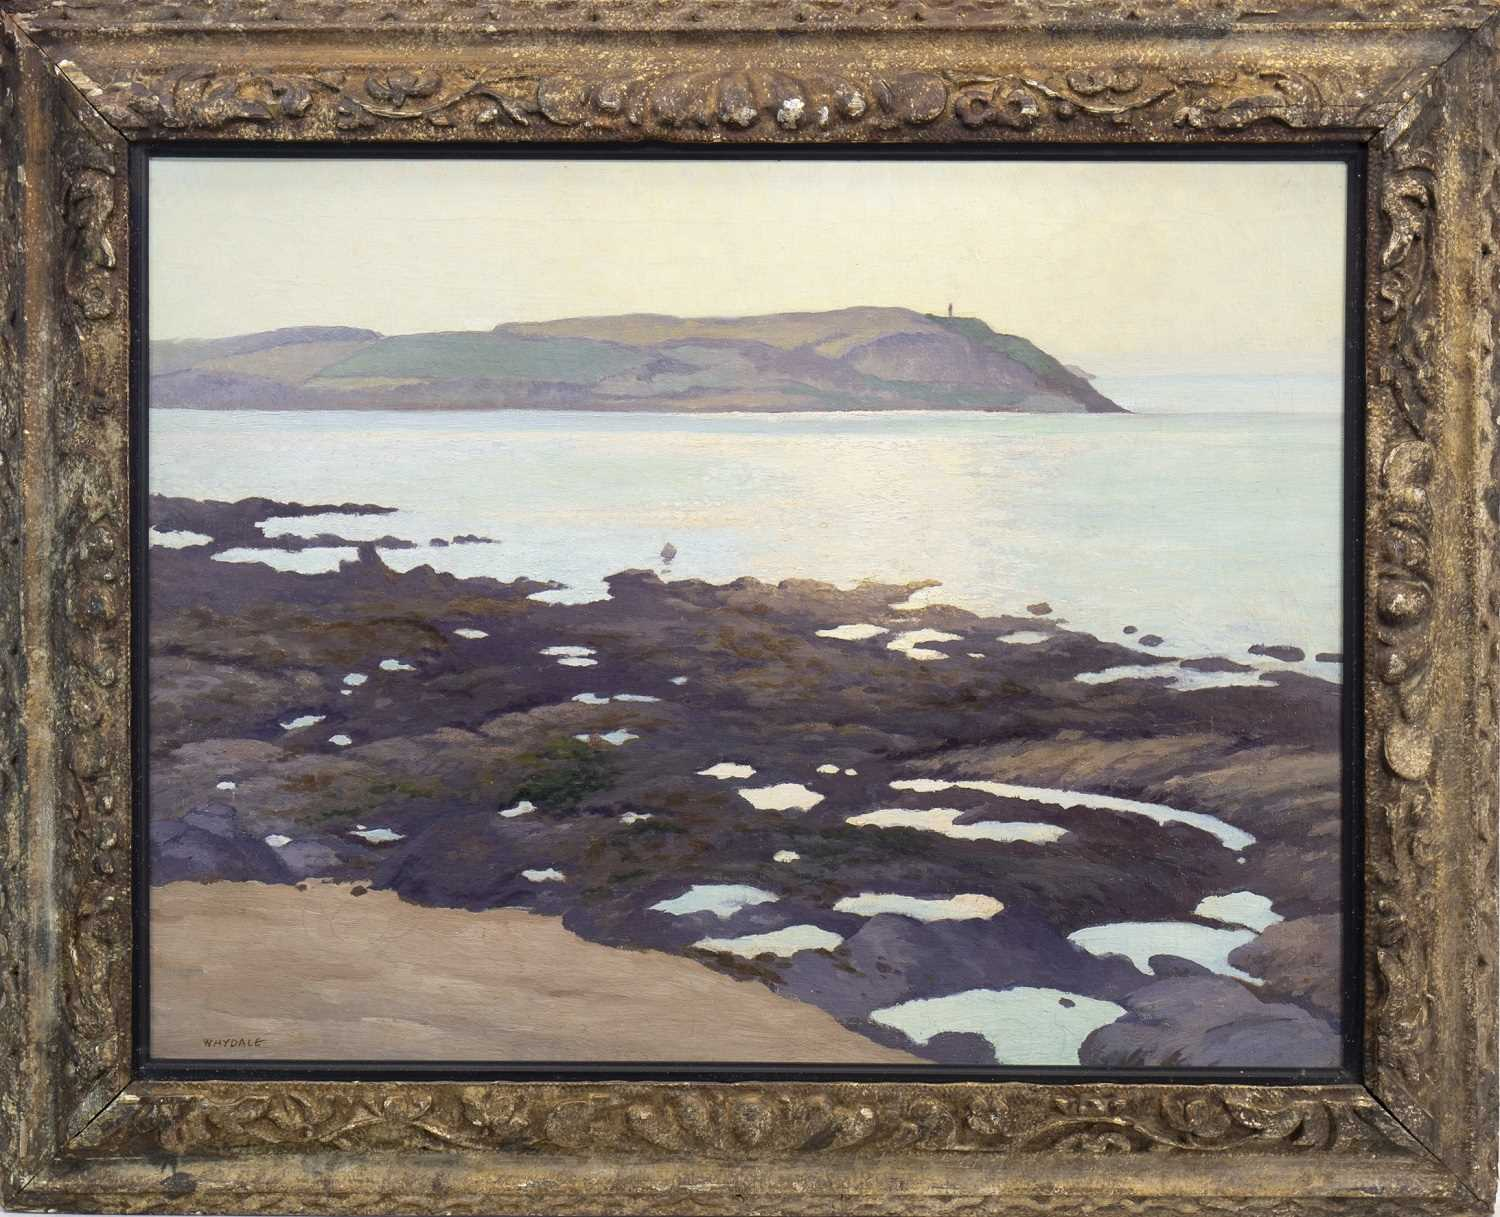 Lot 408-NEAR PADSTOW NORTH CORNWALL, AN OIL BY ERNEST HERBERT WHYDALE